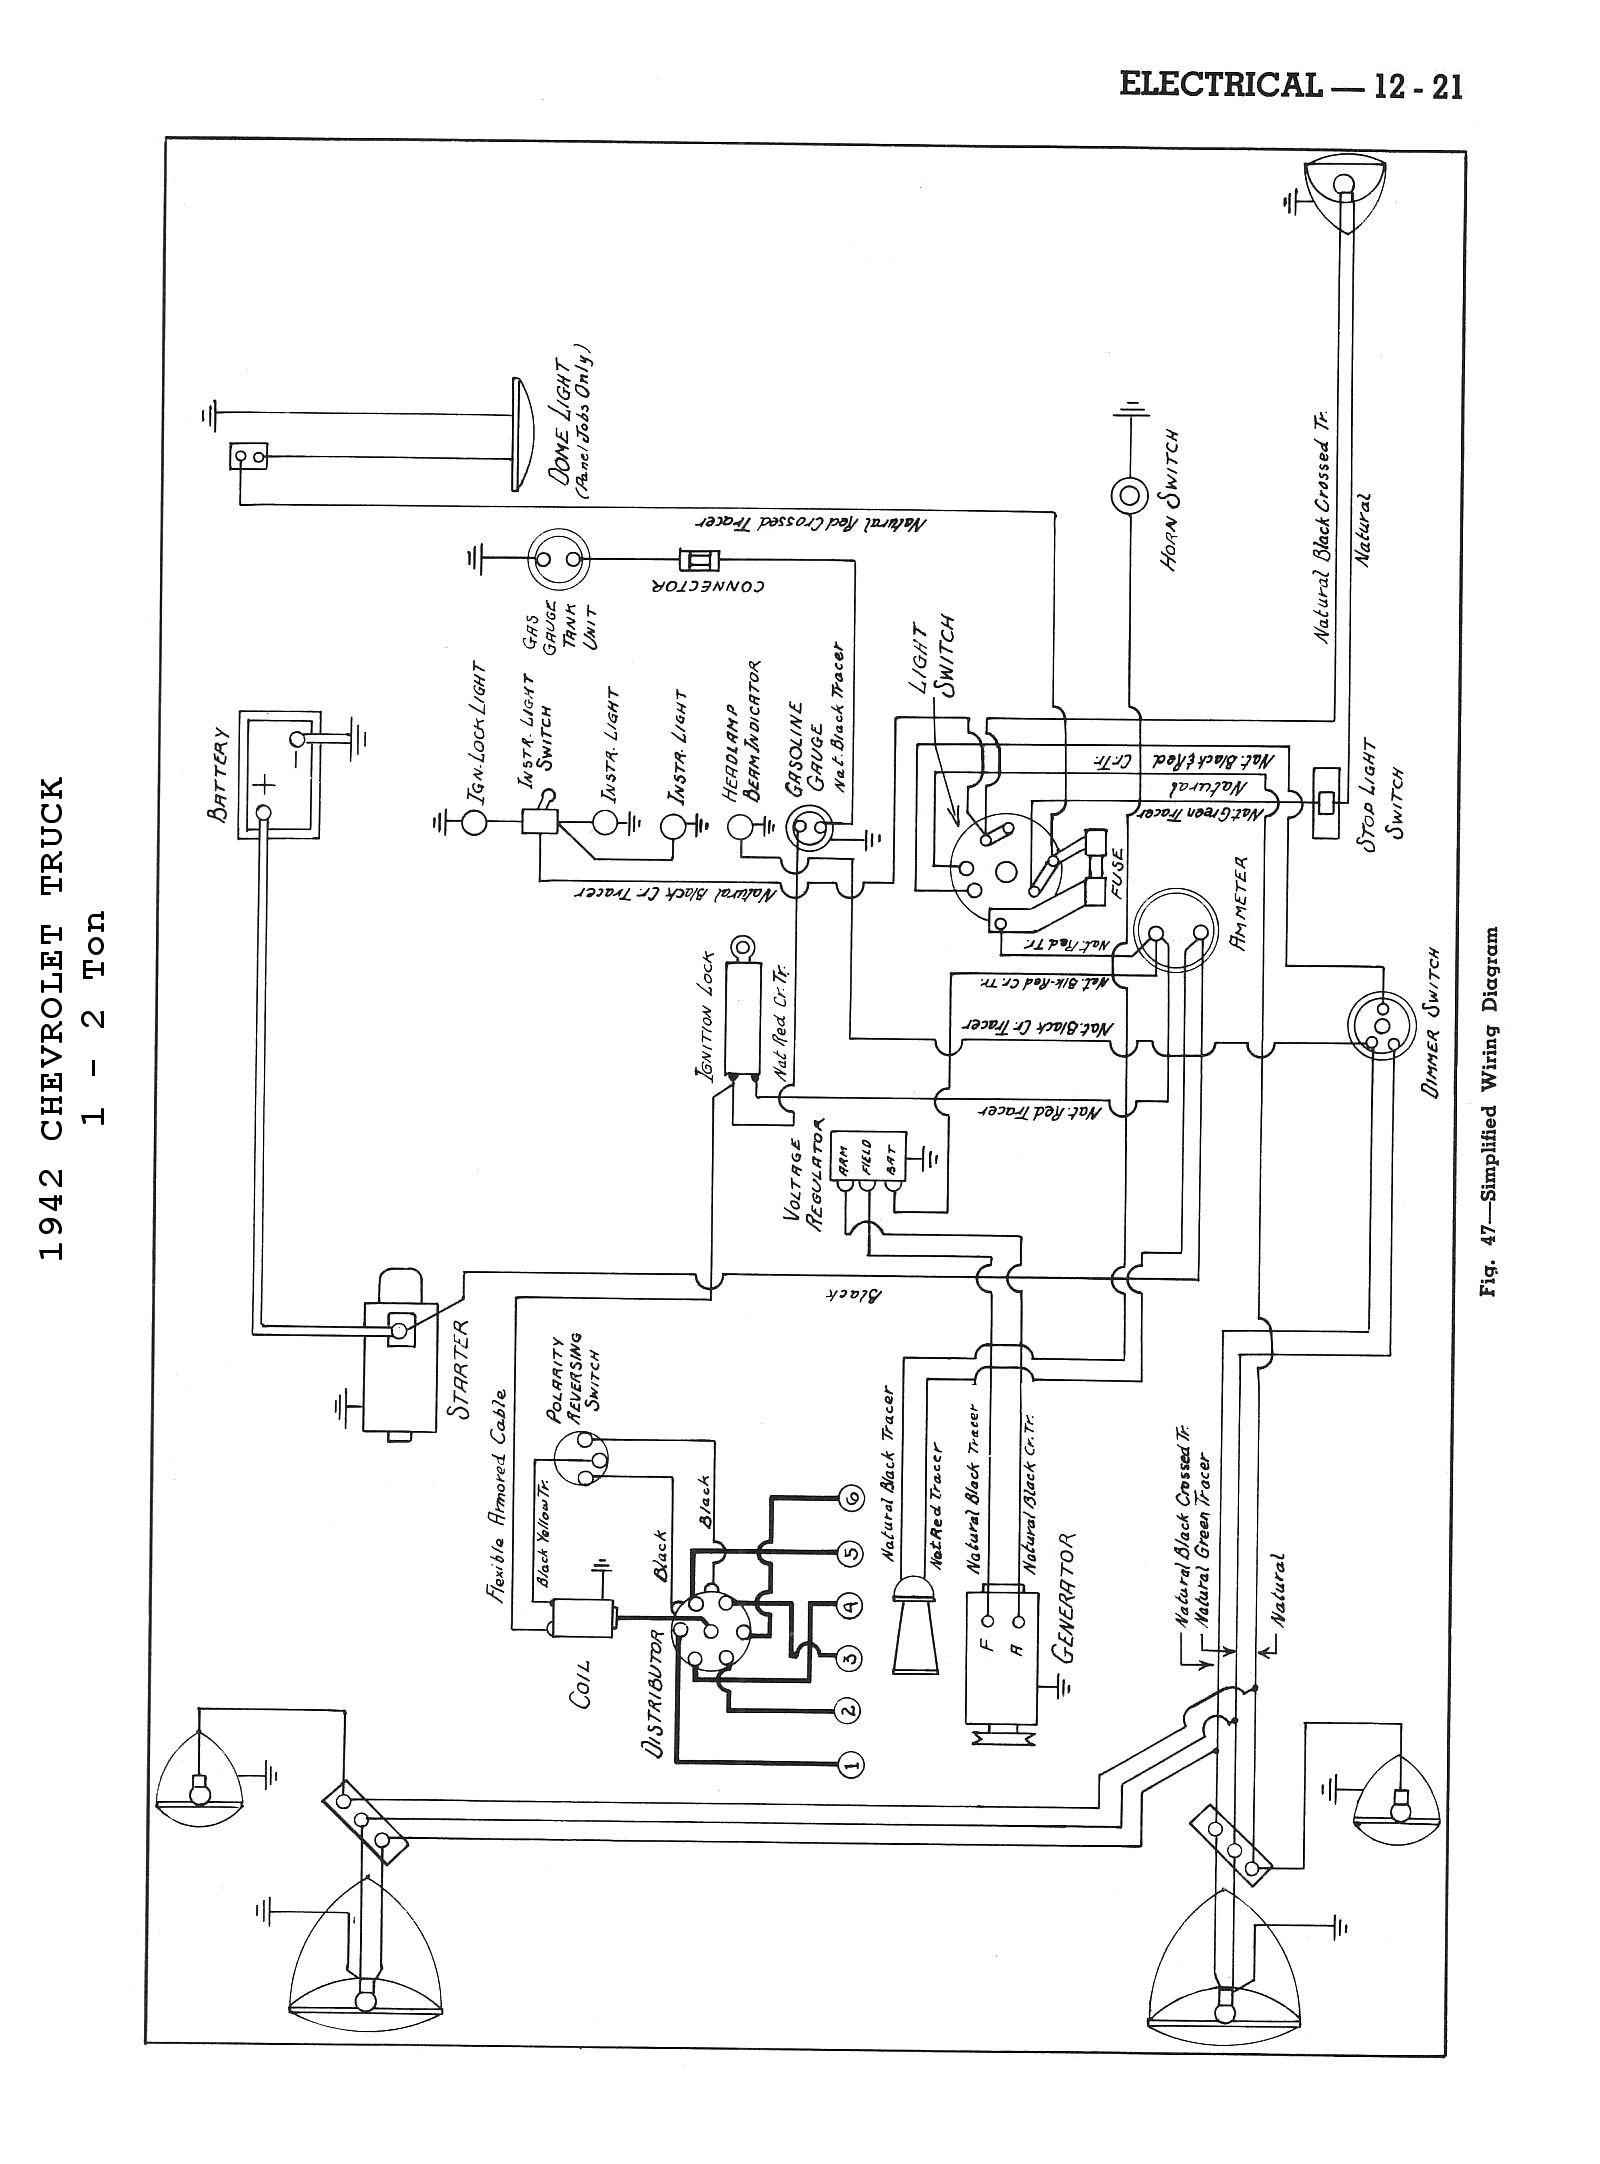 small resolution of 1958 chevrolet steering column wiring diagram